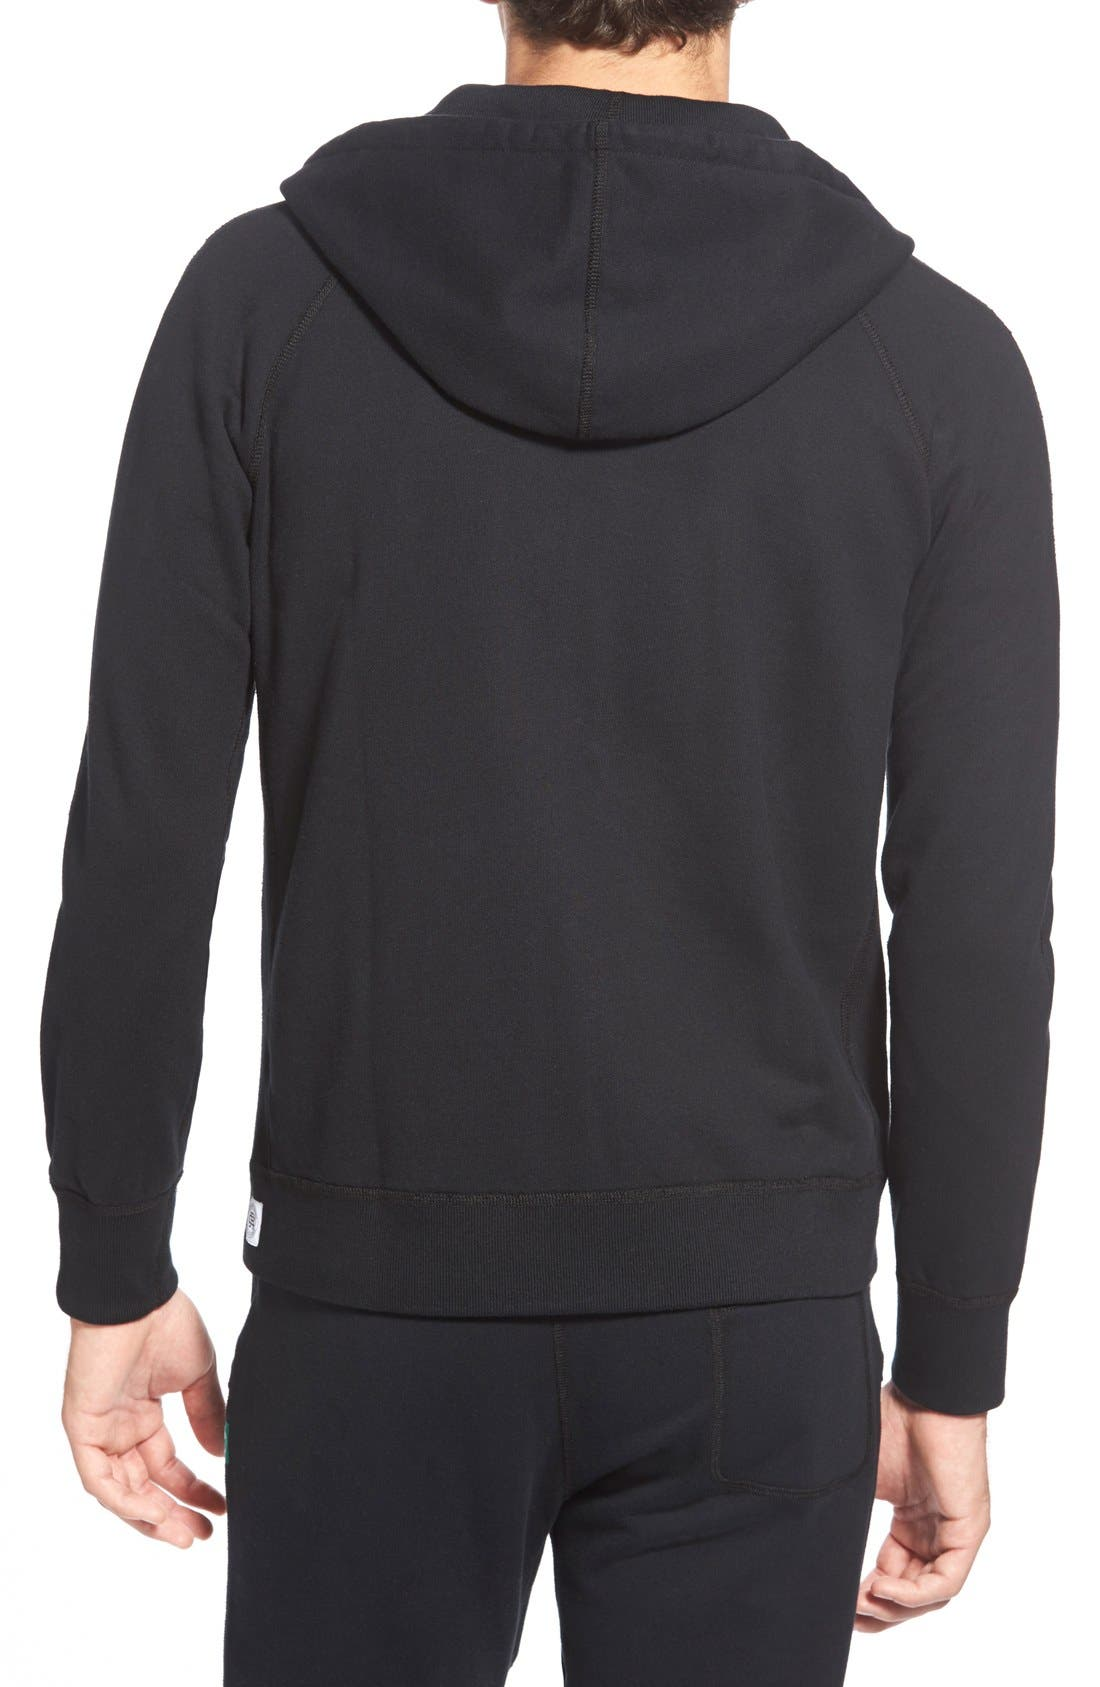 REIGNING CHAMP, Core Zip Front Hoodie, Alternate thumbnail 2, color, BLACK